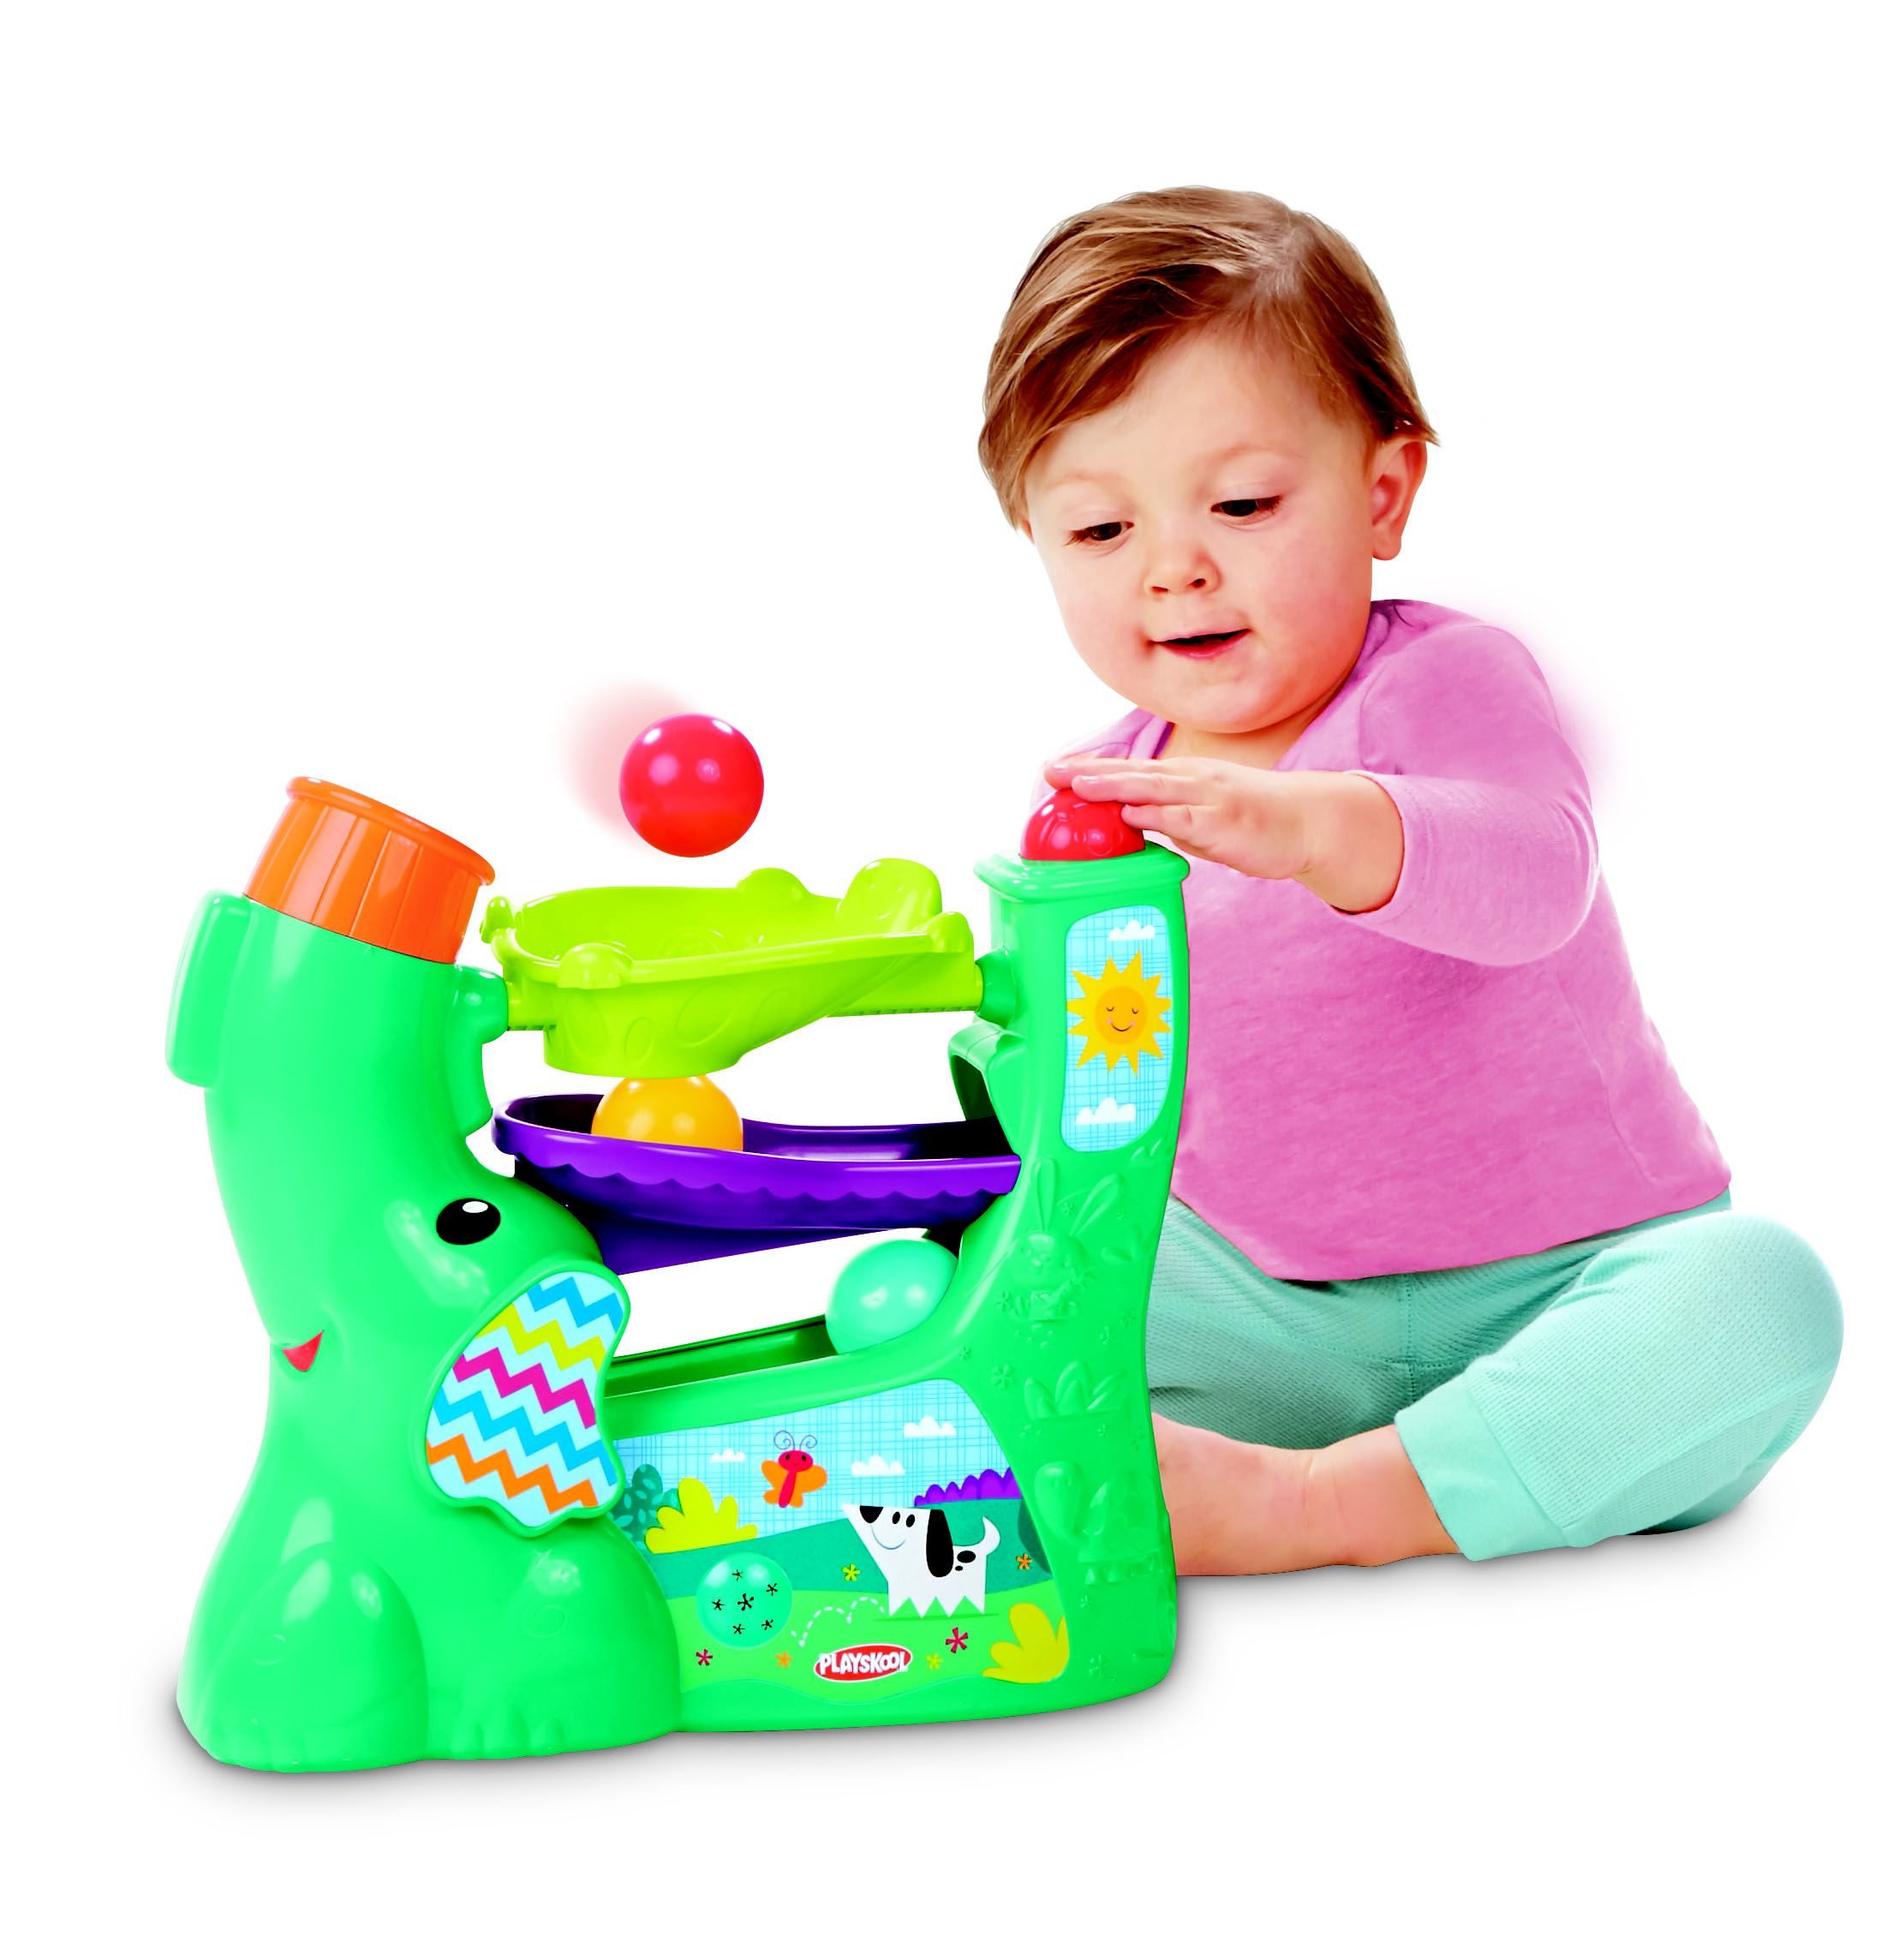 Amazing toys for Infants Images